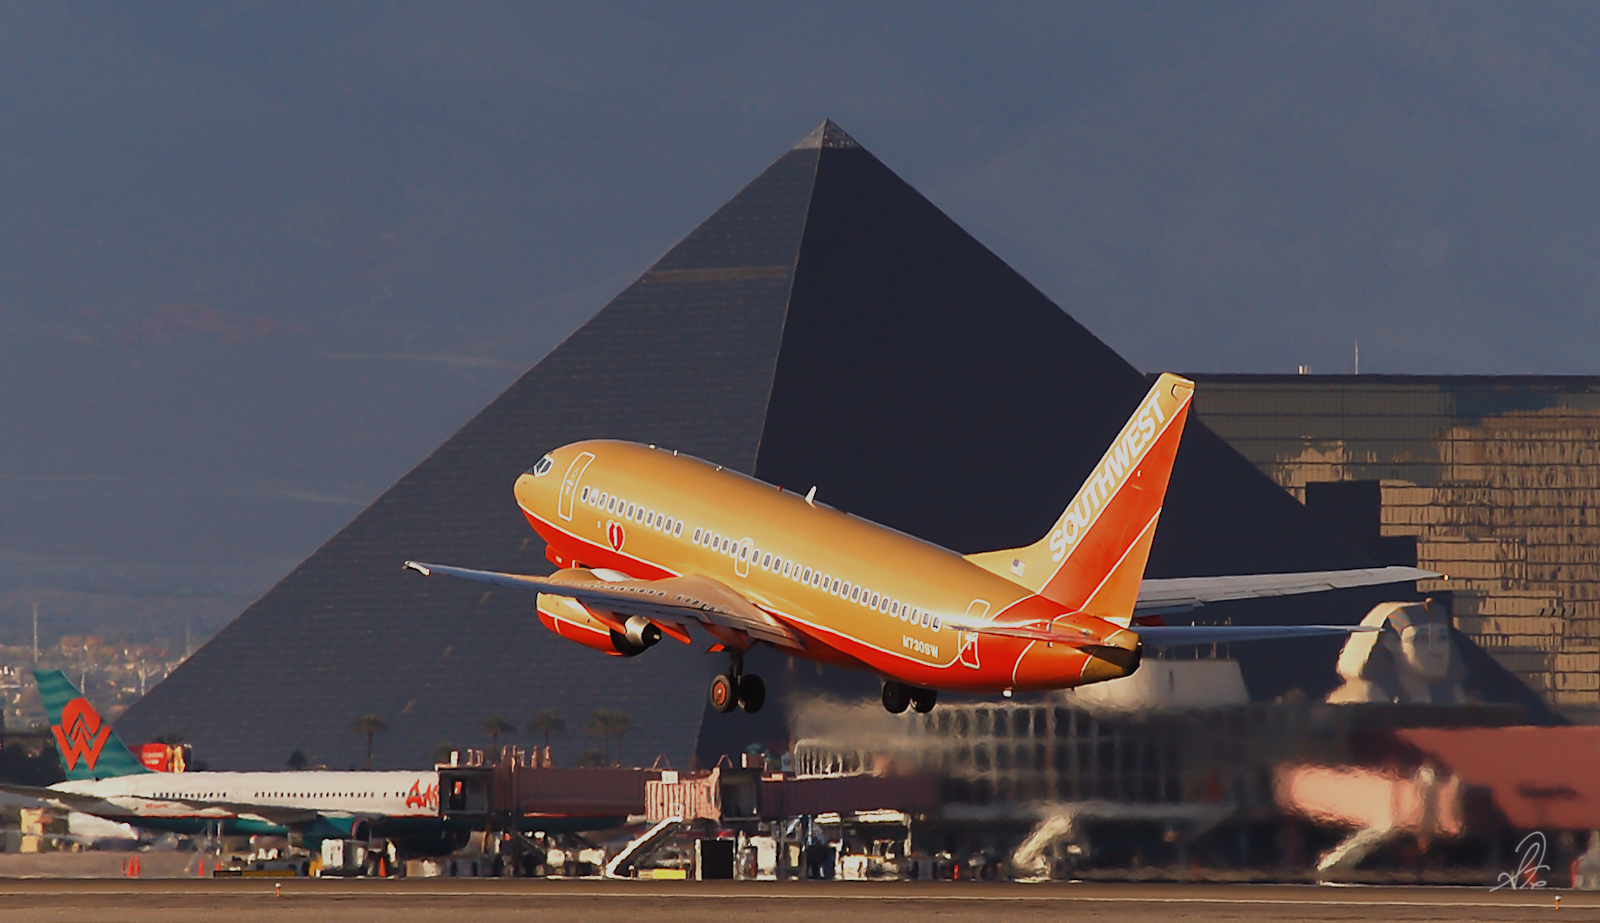 Southwest Airlines Takeoff in Las Vegas